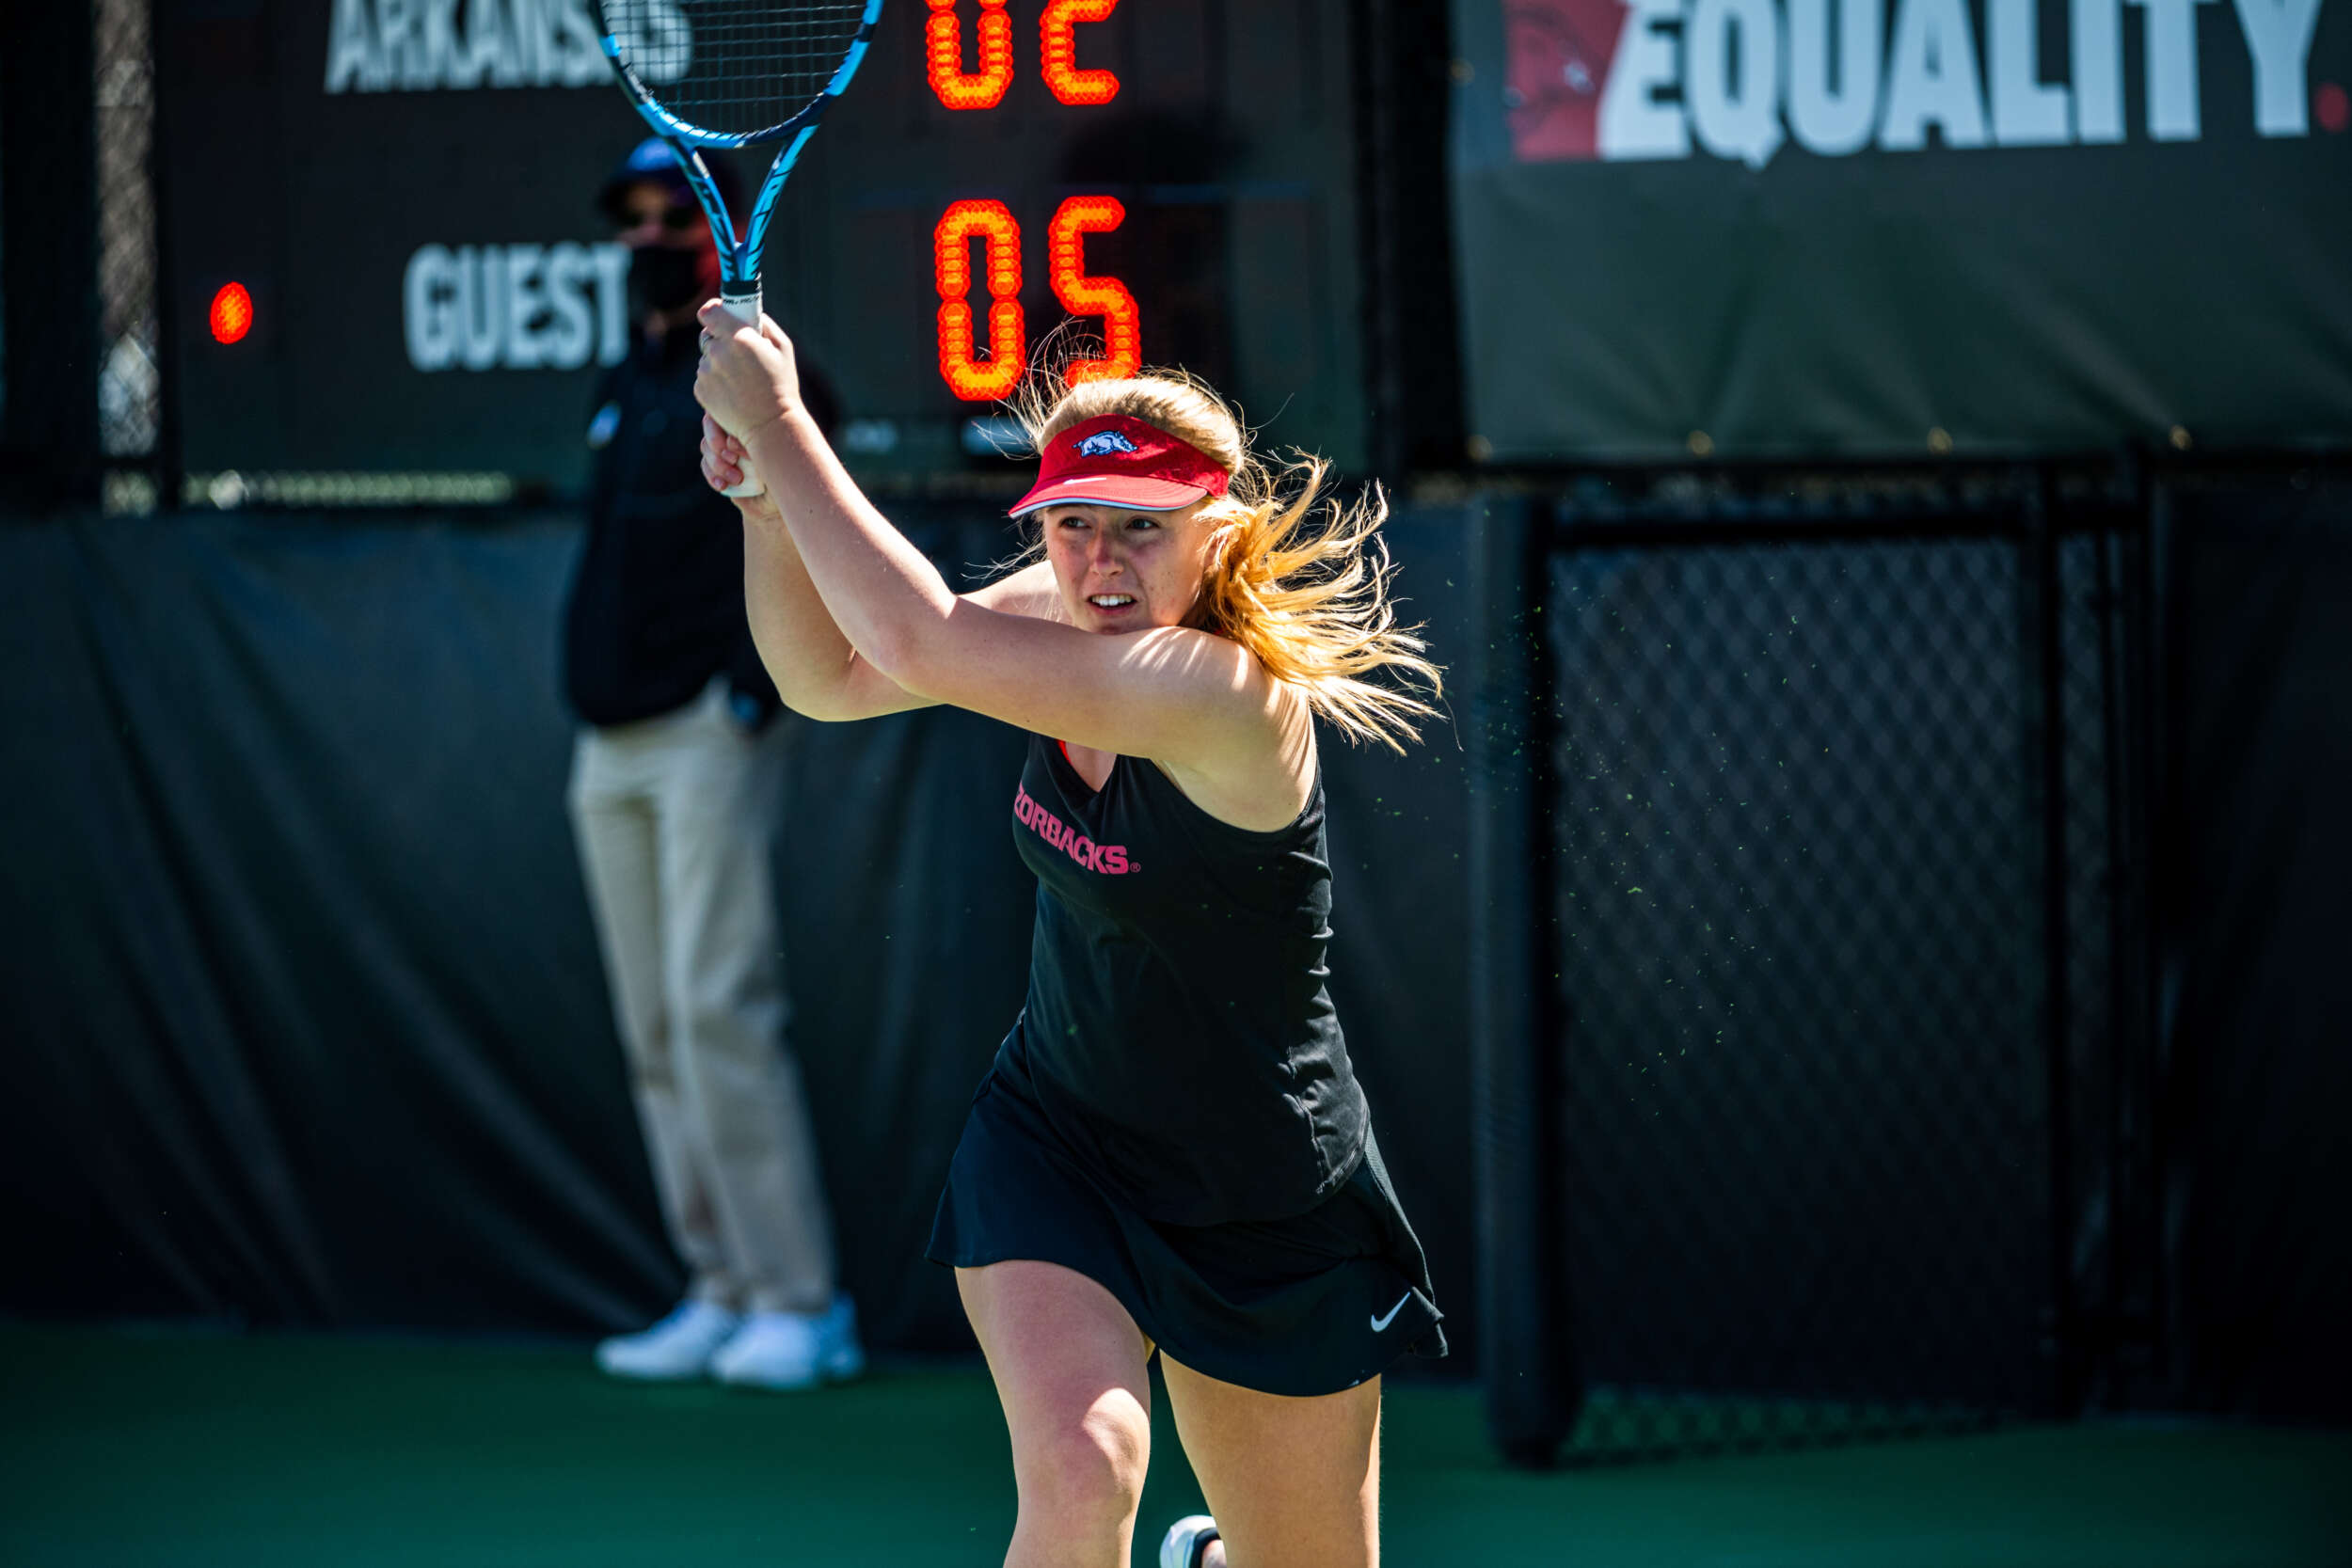 Spink Competes at ITA All-American Championships